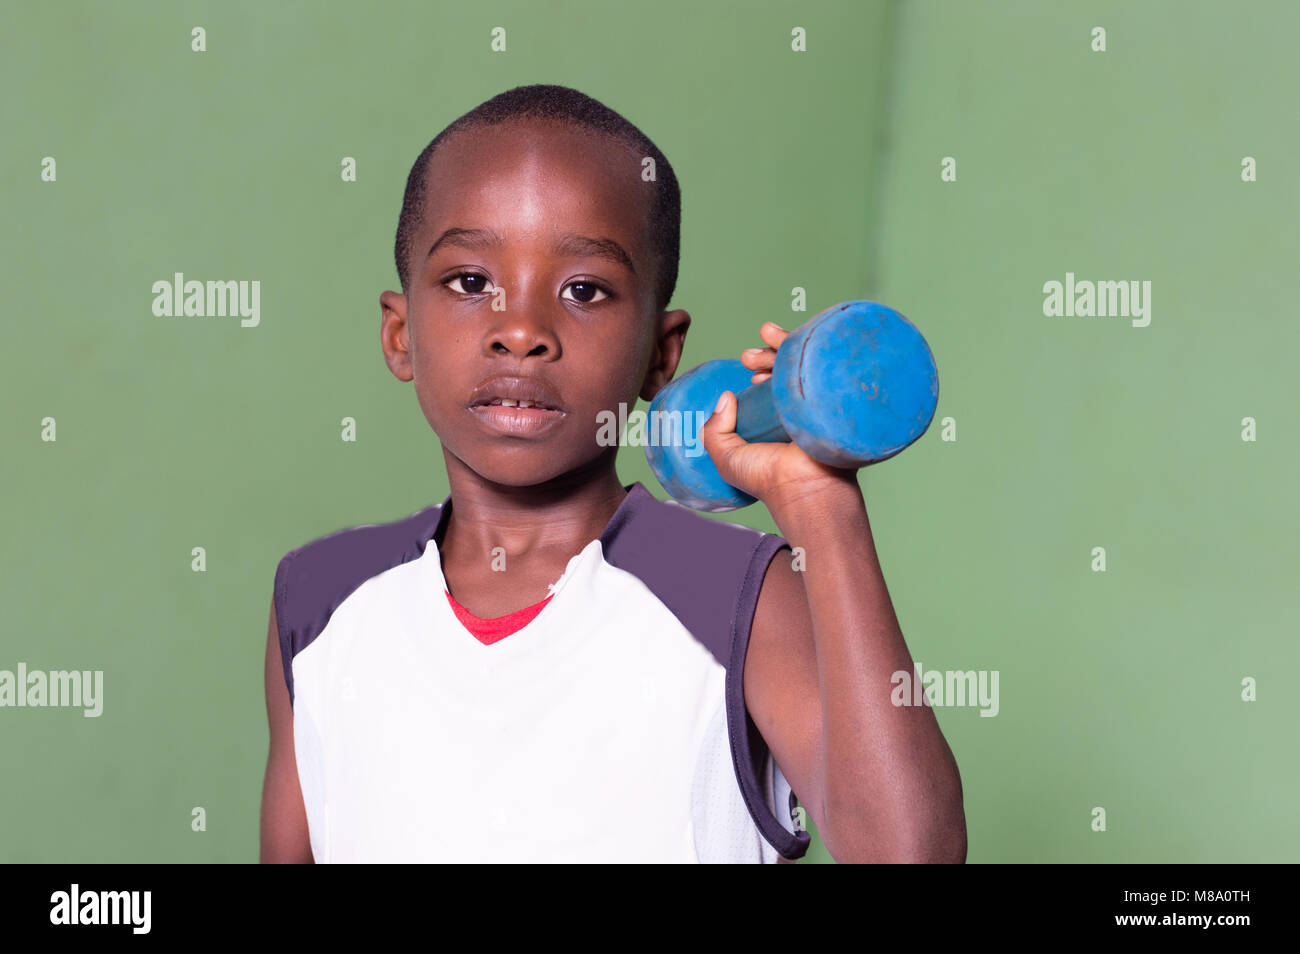 Child training to fitness in a gym by lifting weights - Stock Image